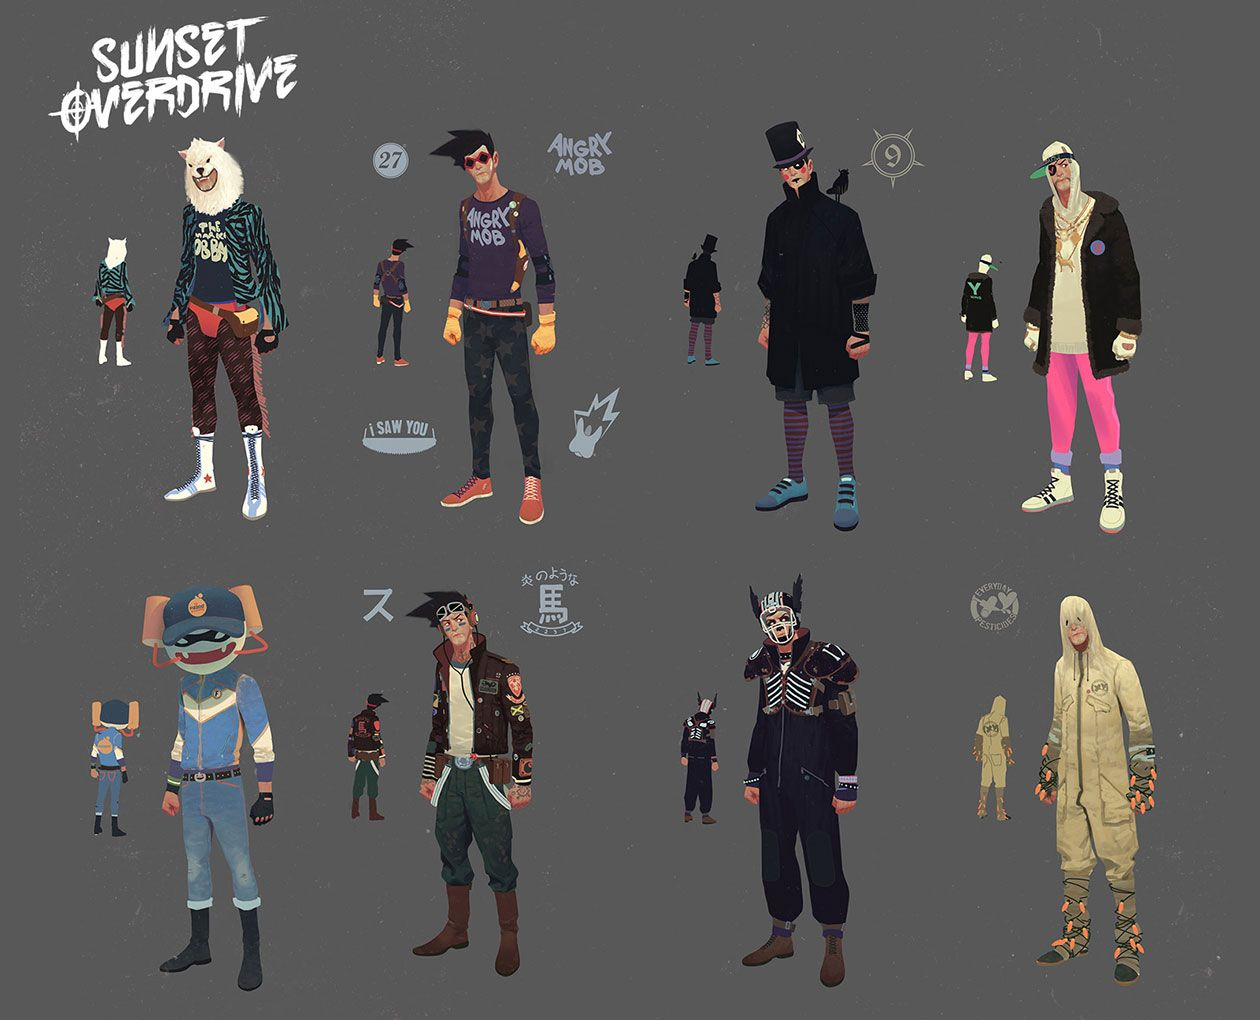 Sunset overdrive character creation and customization